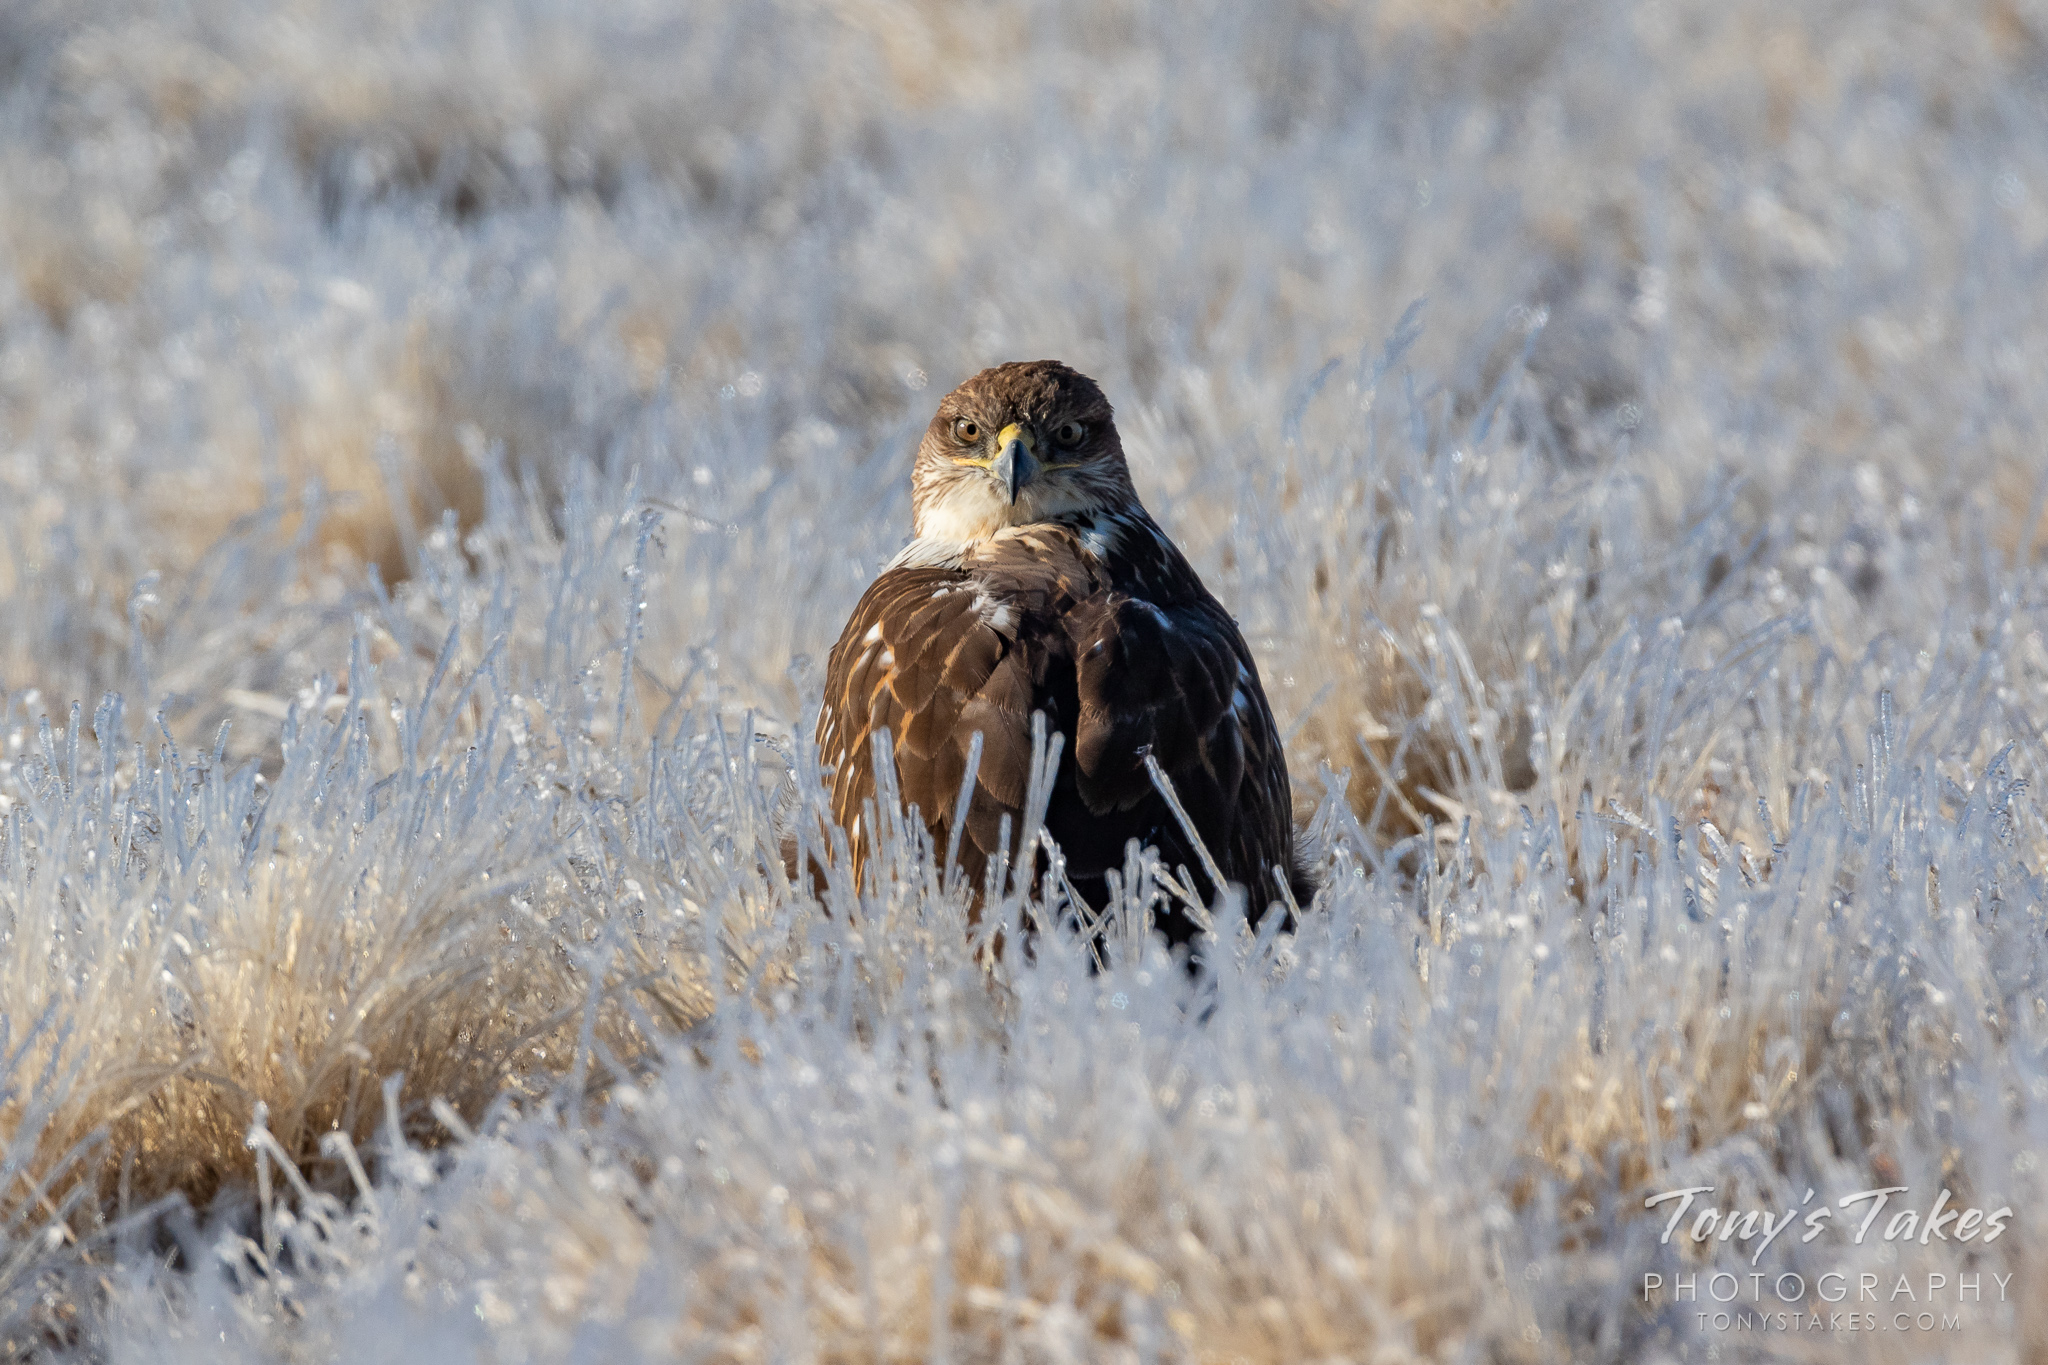 A Ferruginous Hawk sits in ice-covered grasses. (© Tony's Takes)